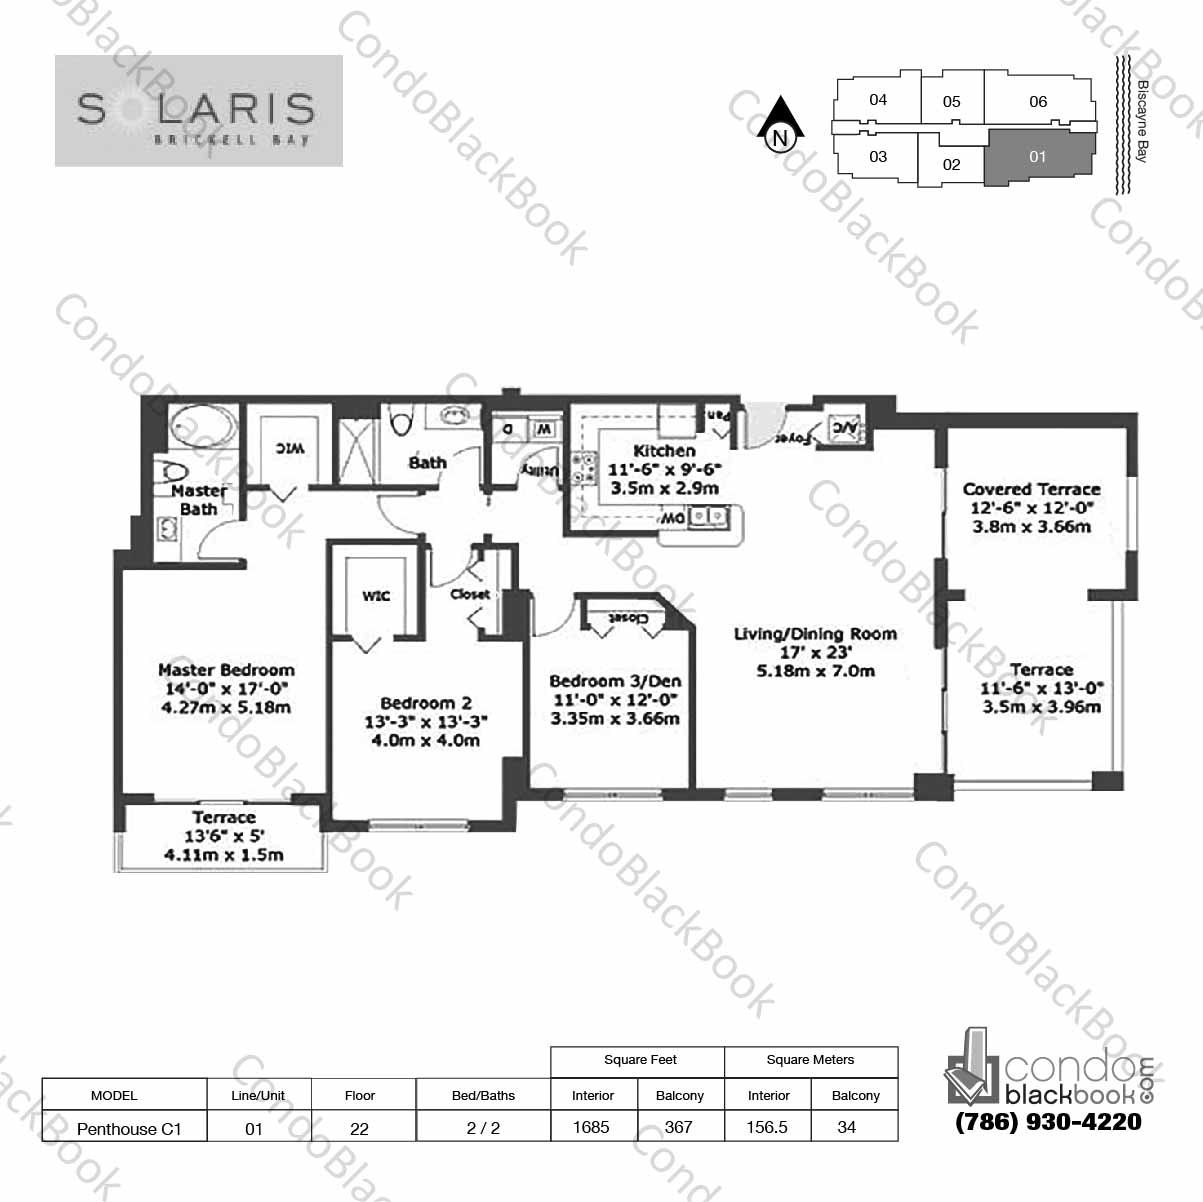 Floor plan for Solaris at Brickell Brickell Miami, model Penthouse C1, line 01, 2 / 2 bedrooms, 1685 sq ft